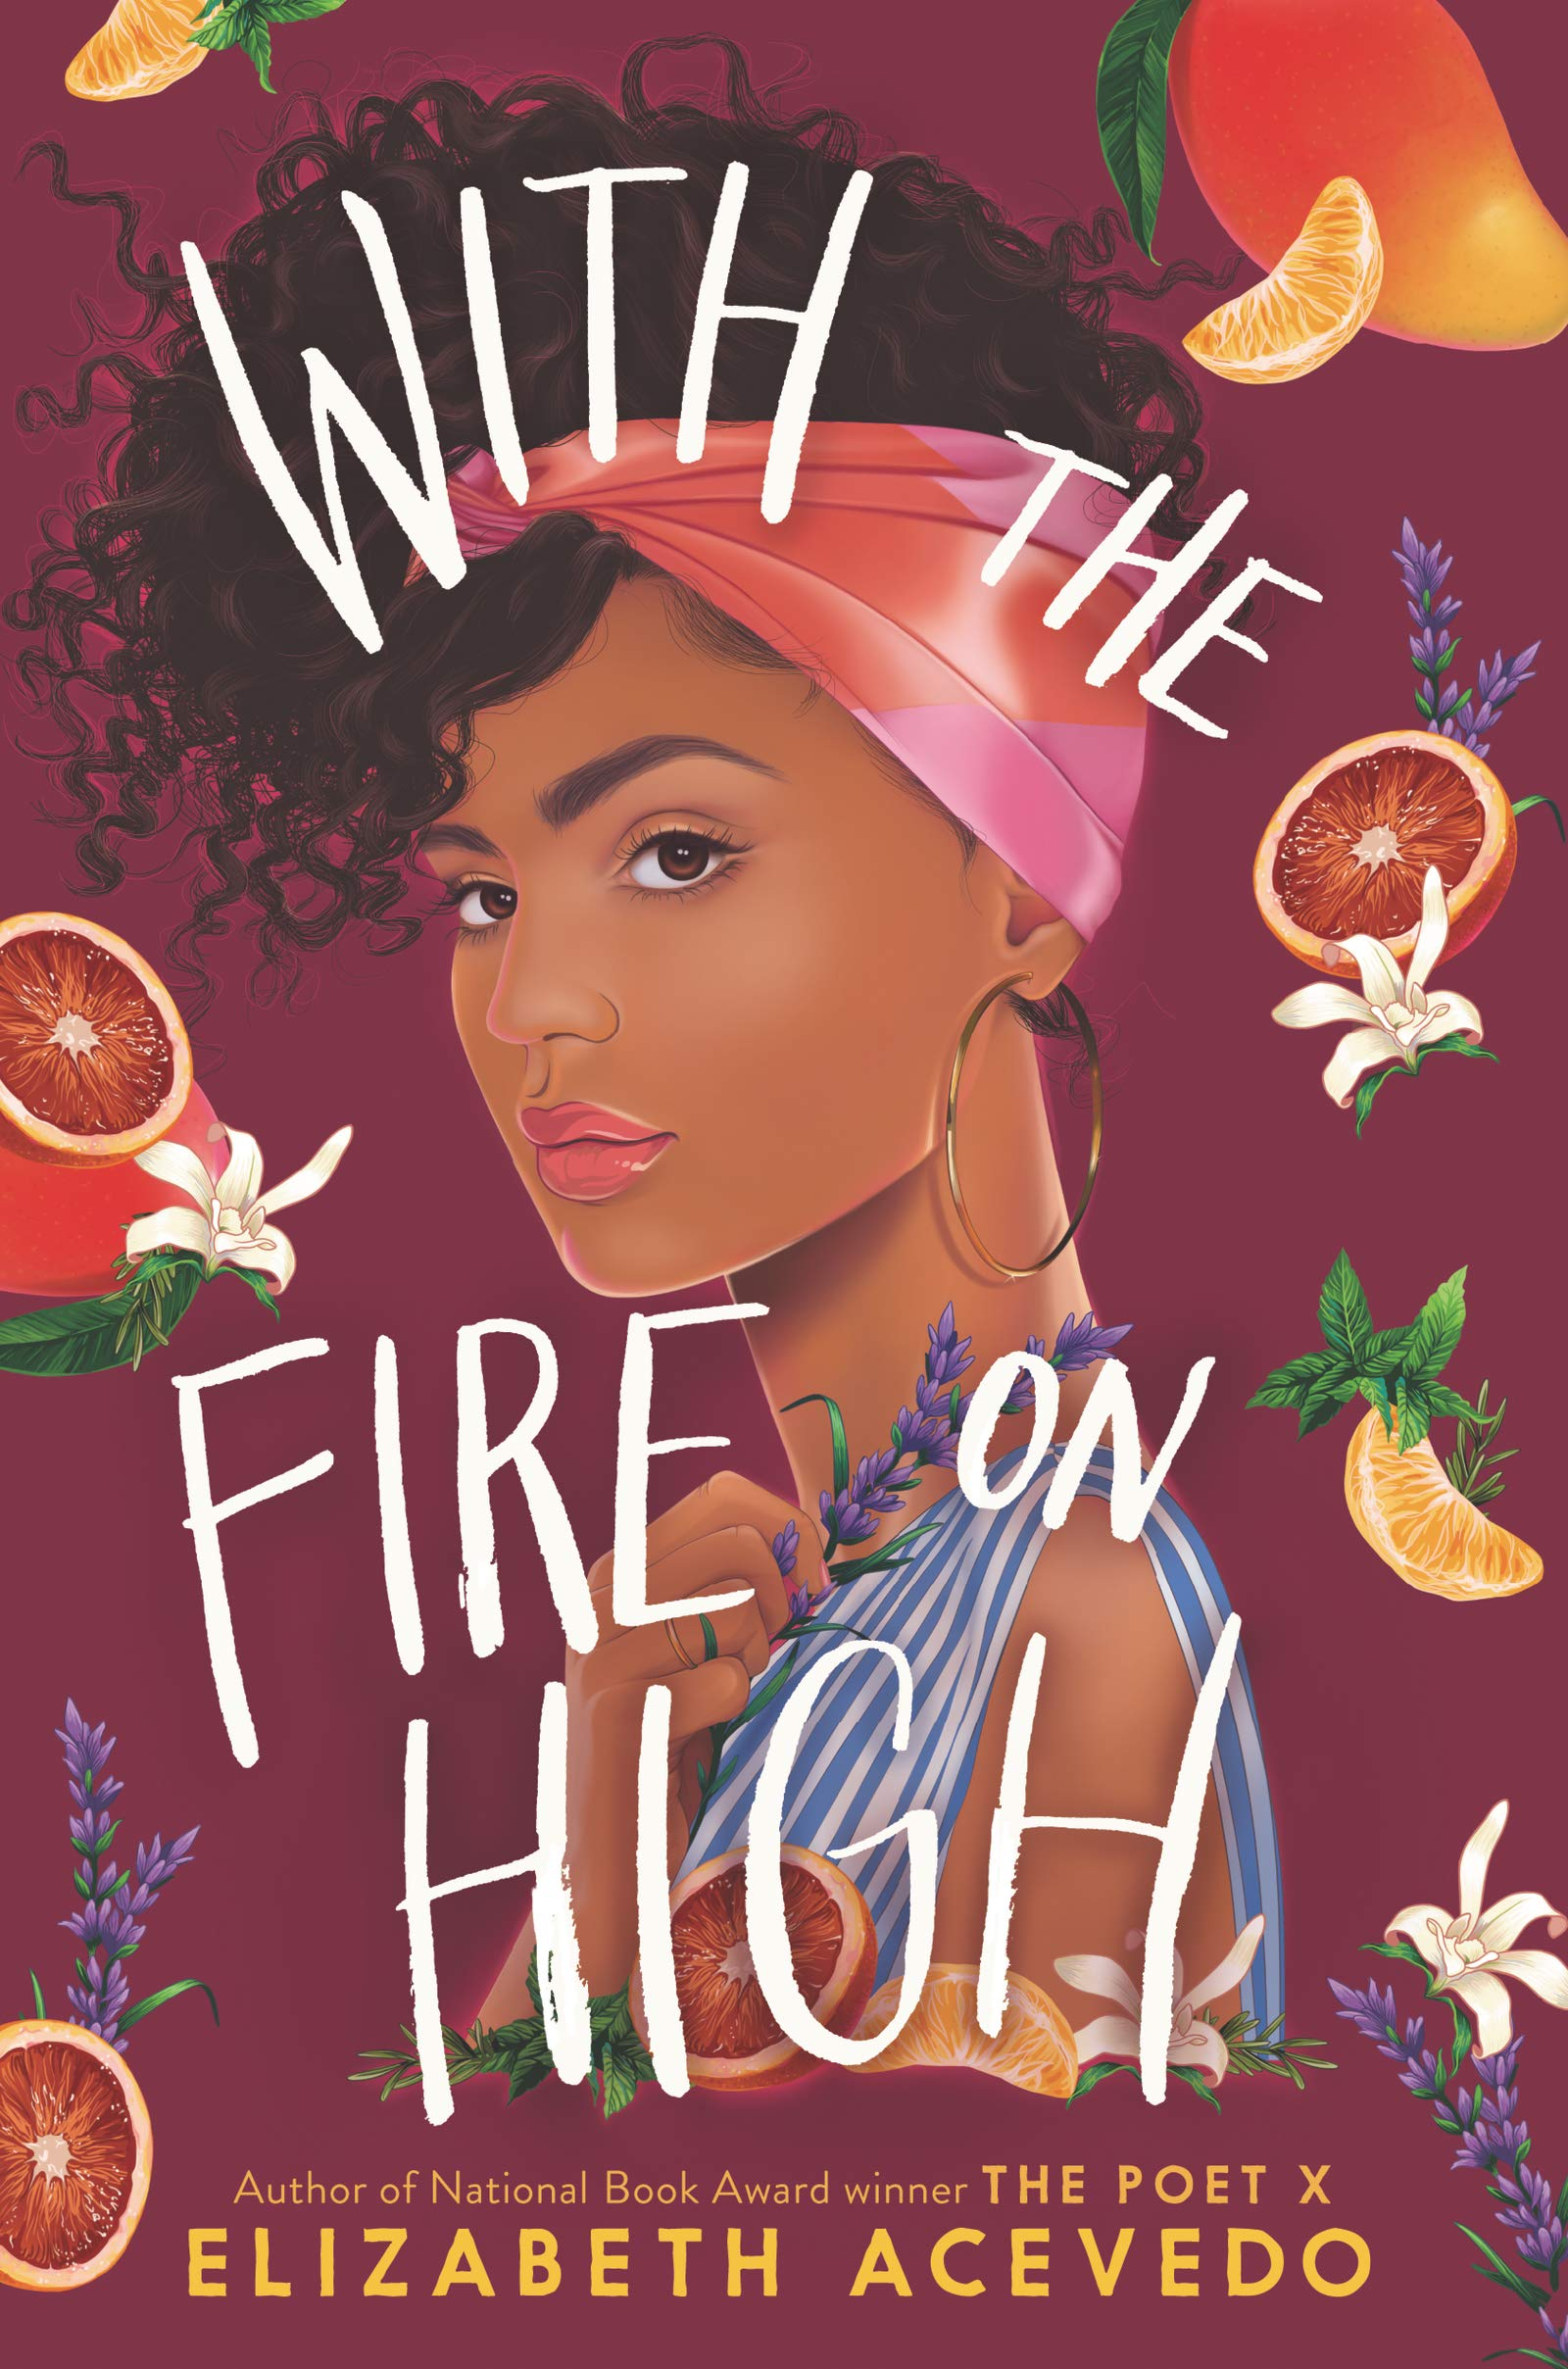 Cover of book called With The Fire on High